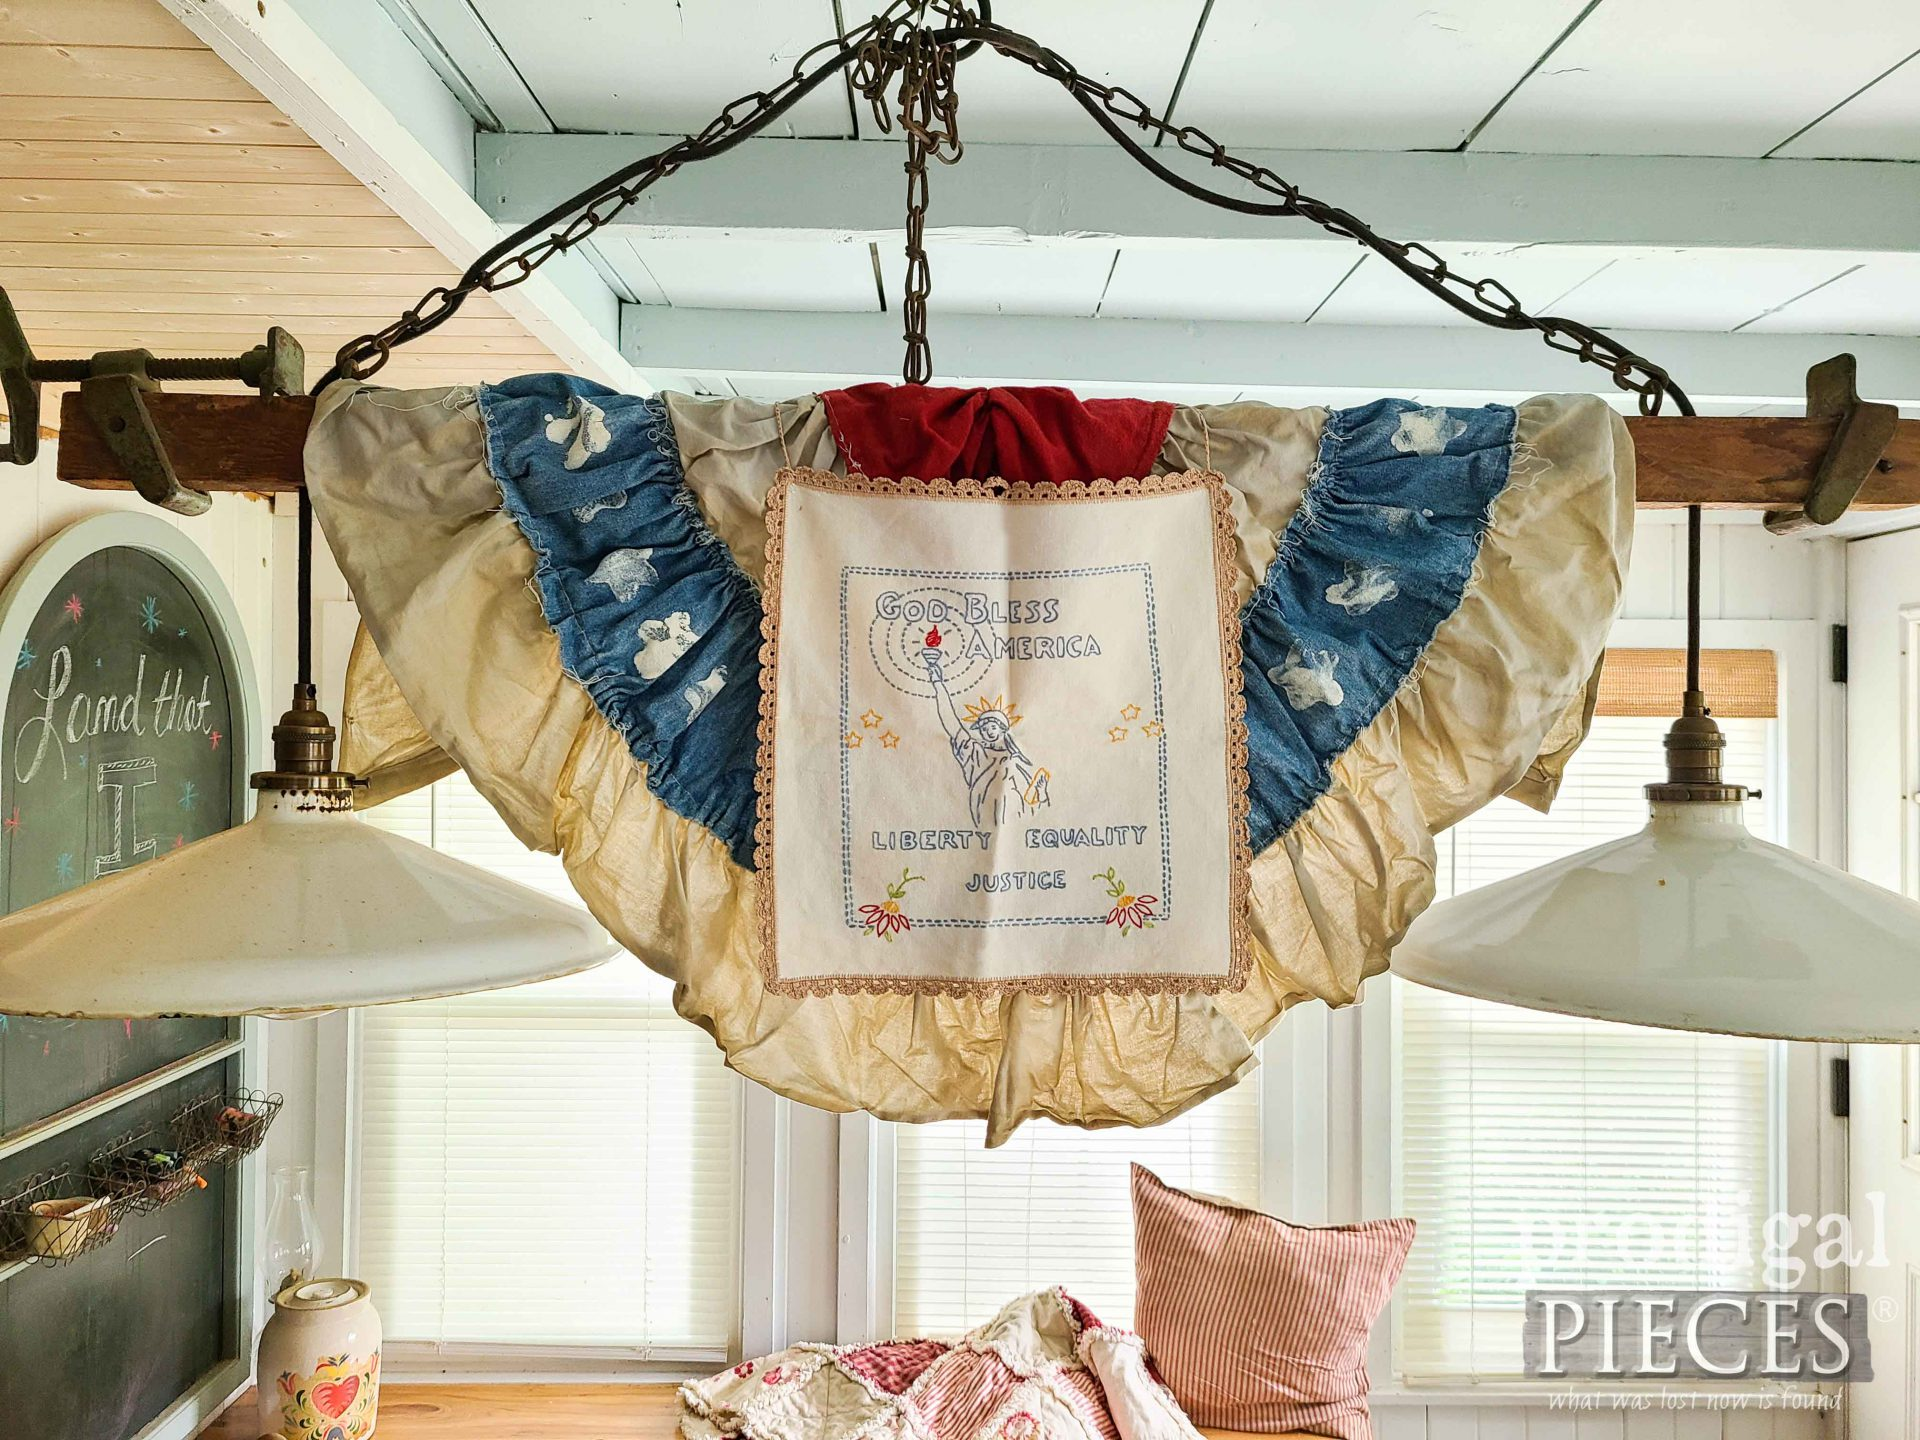 Embroidered Patriotic Decor by Larissa of Prodigal Pieces | prodigalpieces.com #prodigalpieces #farmhouse #patriotic #godblessusa #4thofjuly